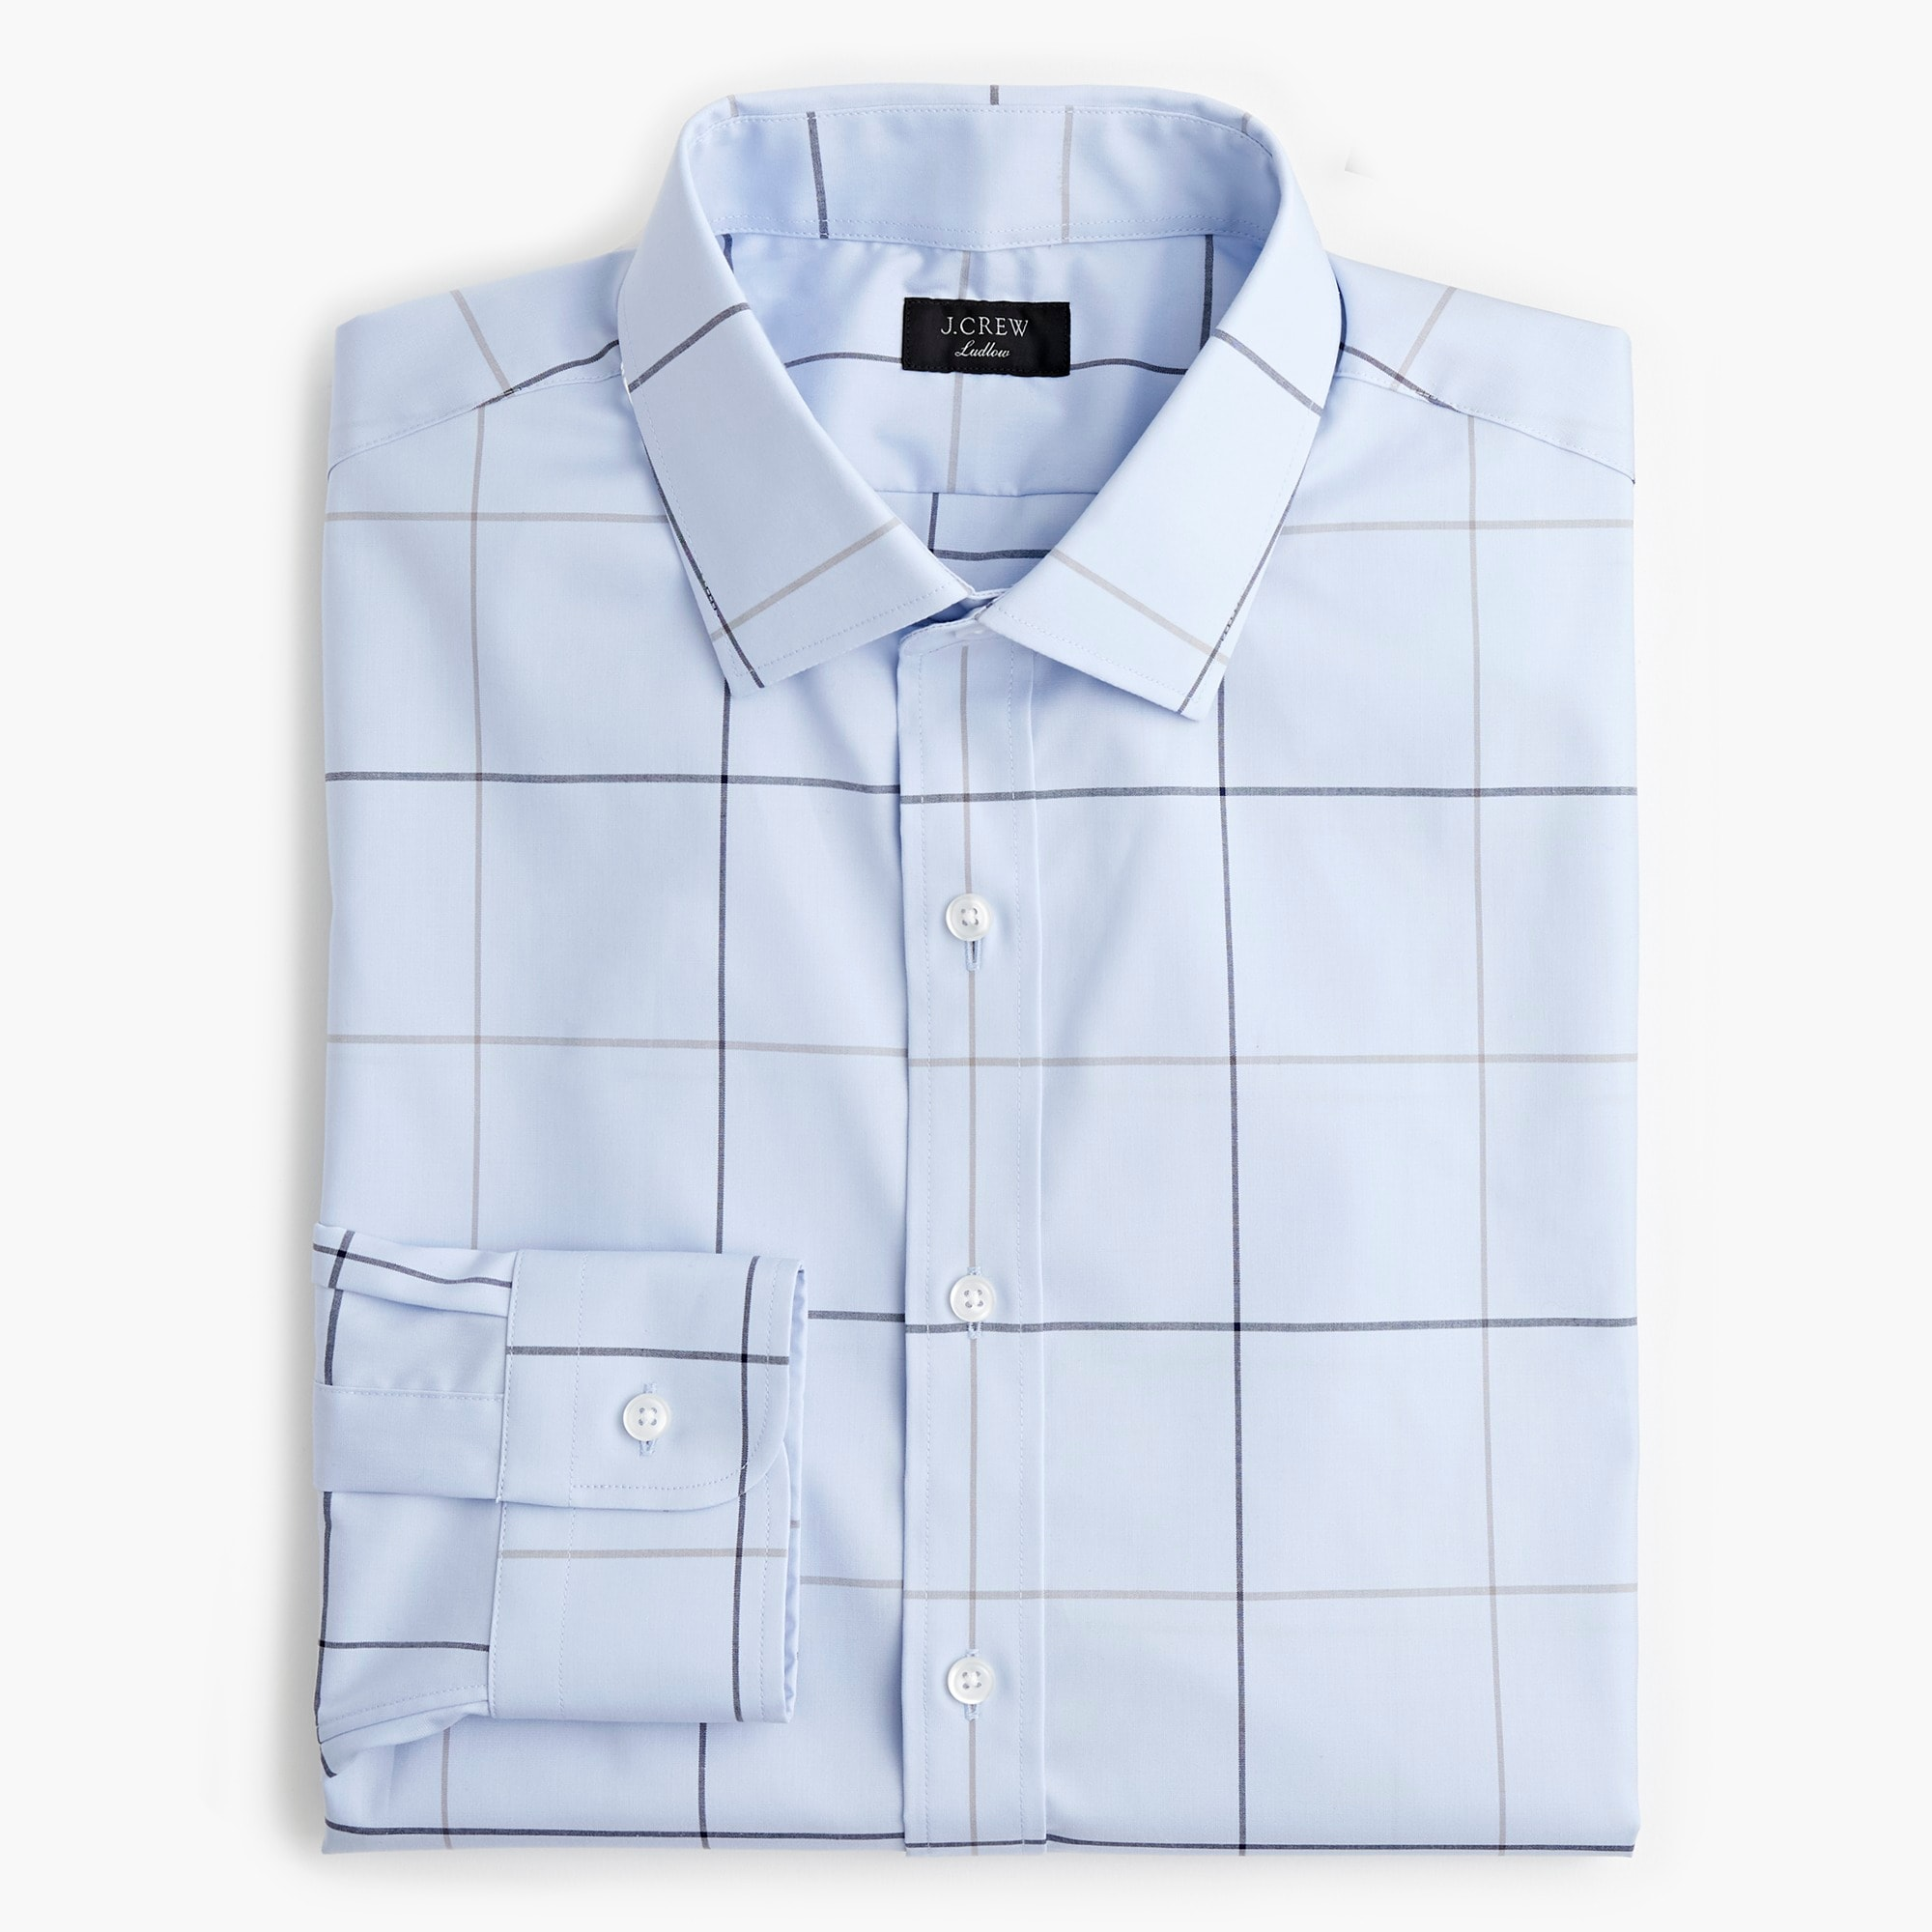 Classic Ludlow stretch two-ply easy-care cotton dress shirt in sky tattersall